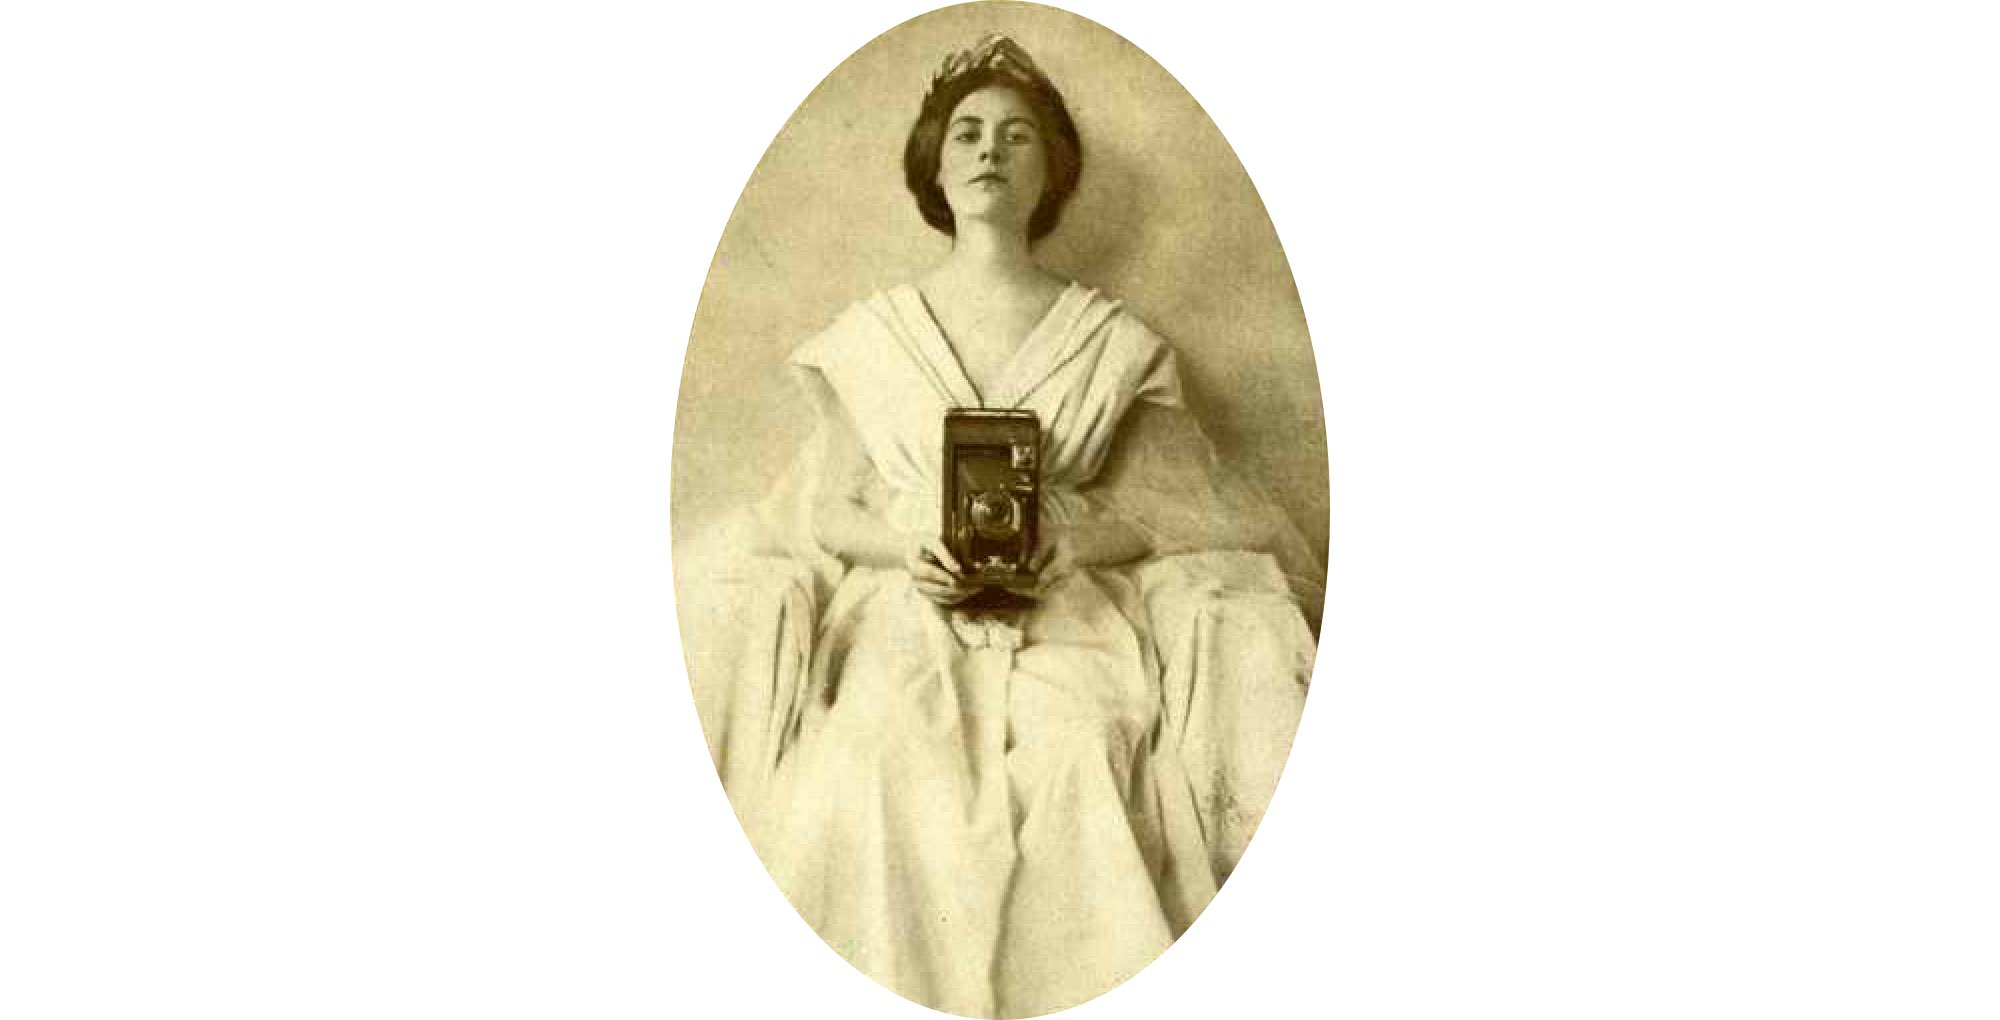 kodak woman holding camera 1911